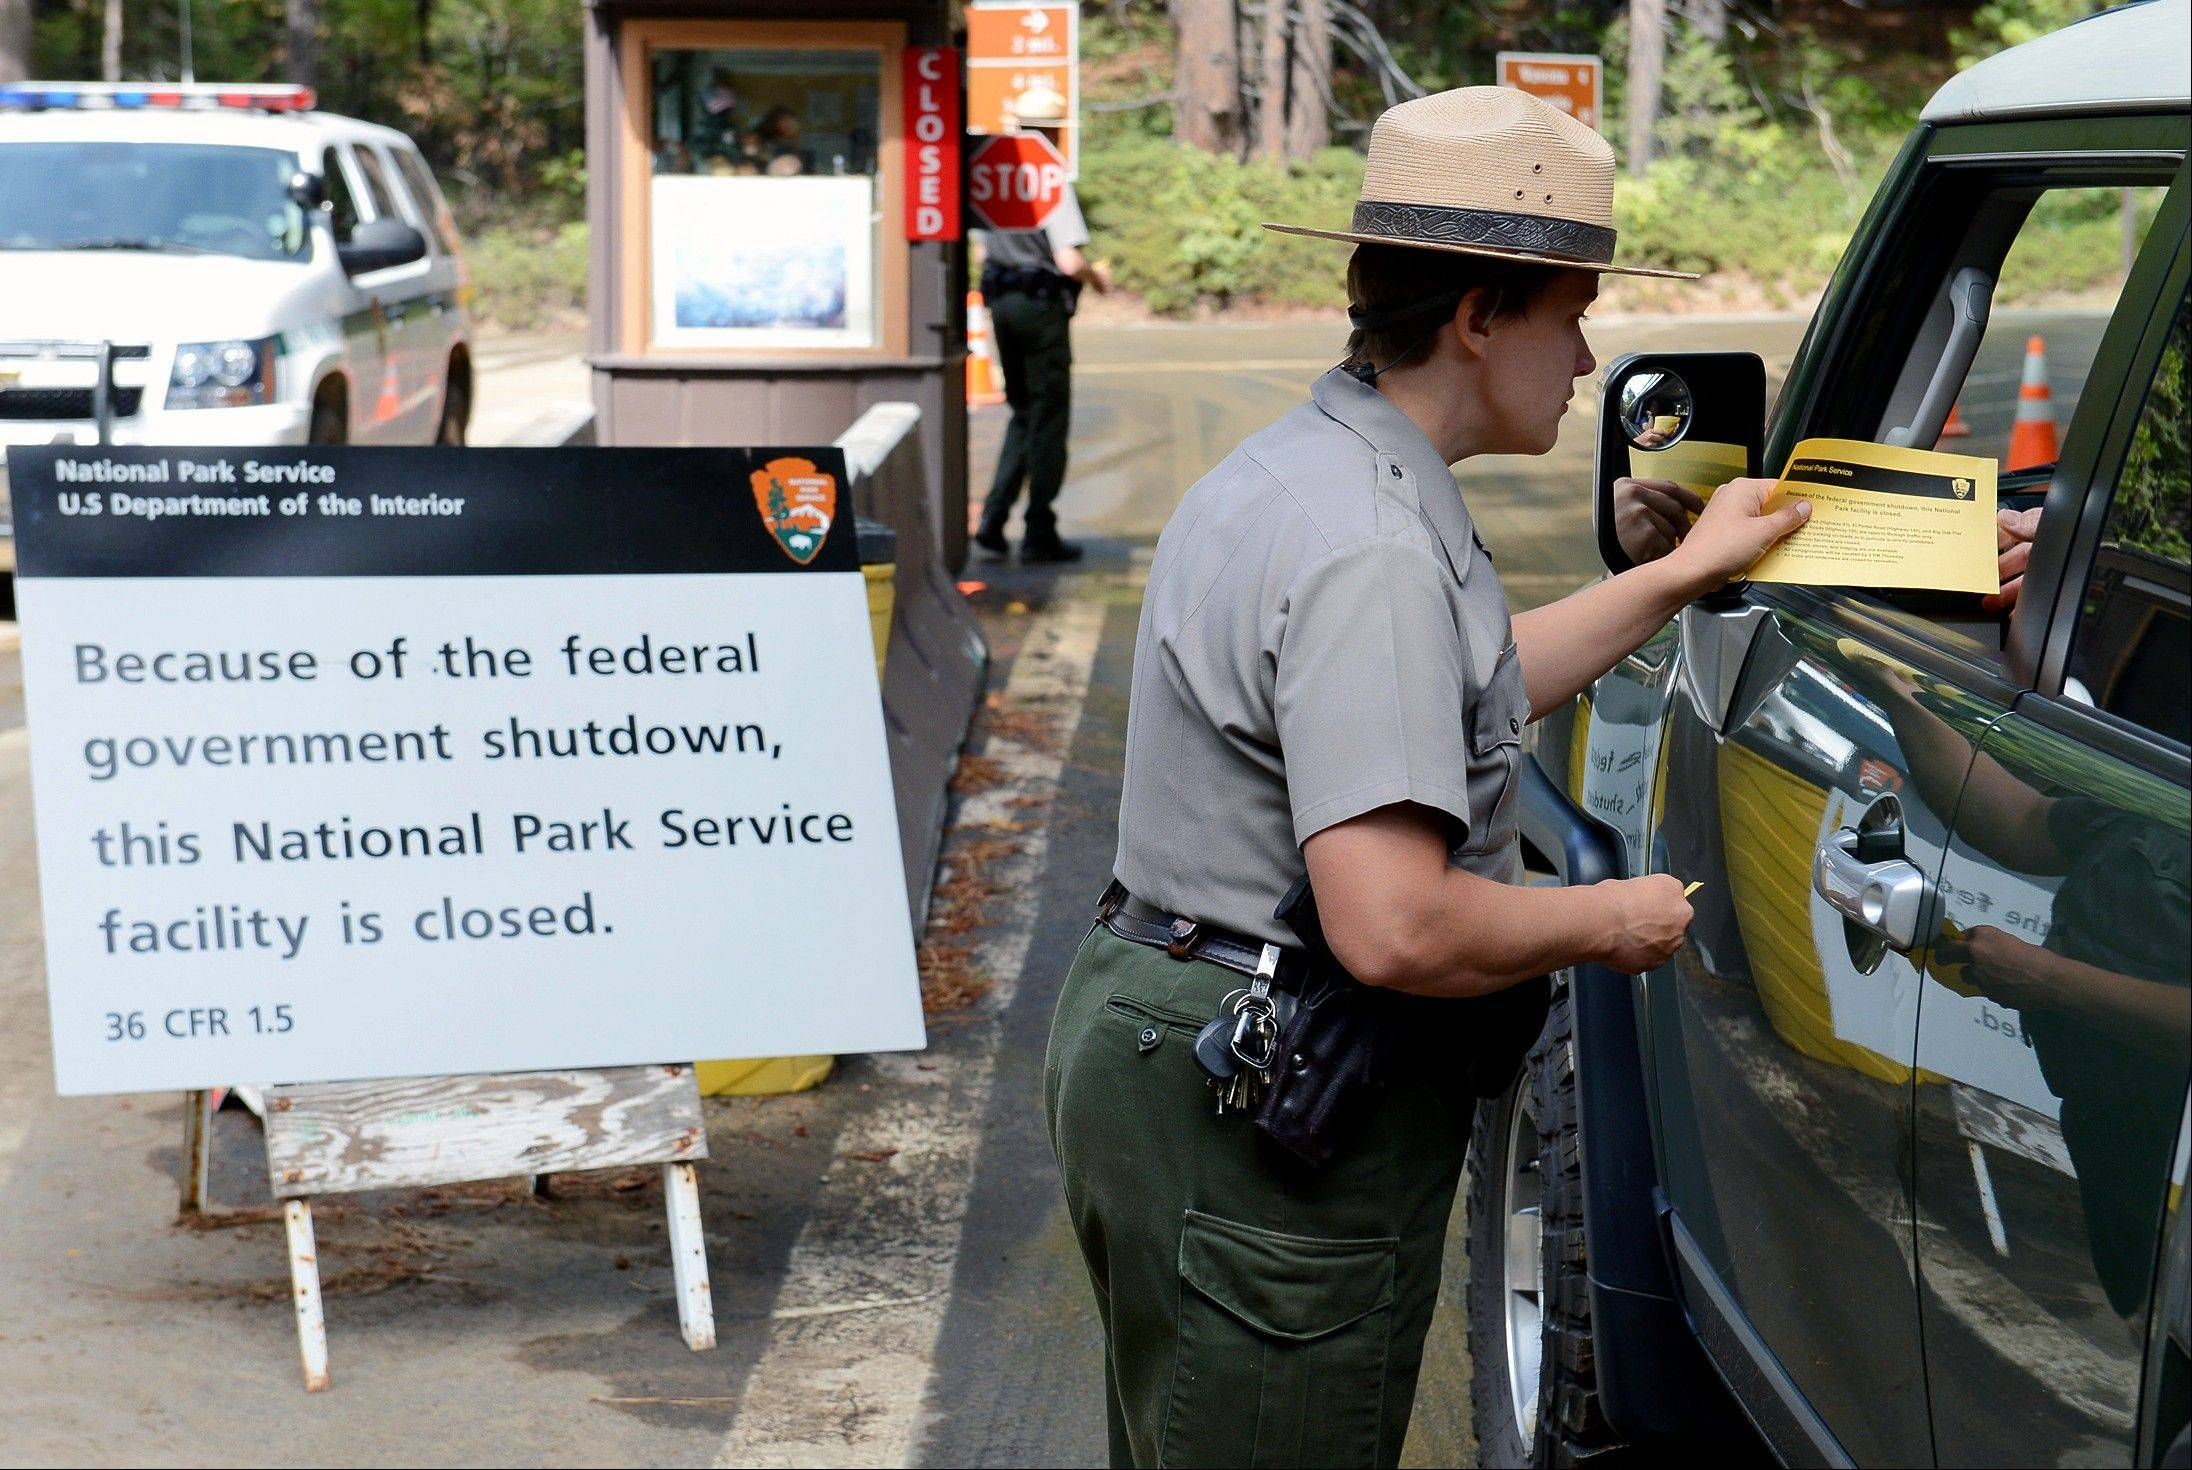 U.S. park ranger Heidi Schlichting informs visitors of the closure of Yosemite National Park, Calif., of the closure of the park due to the government shutdown.